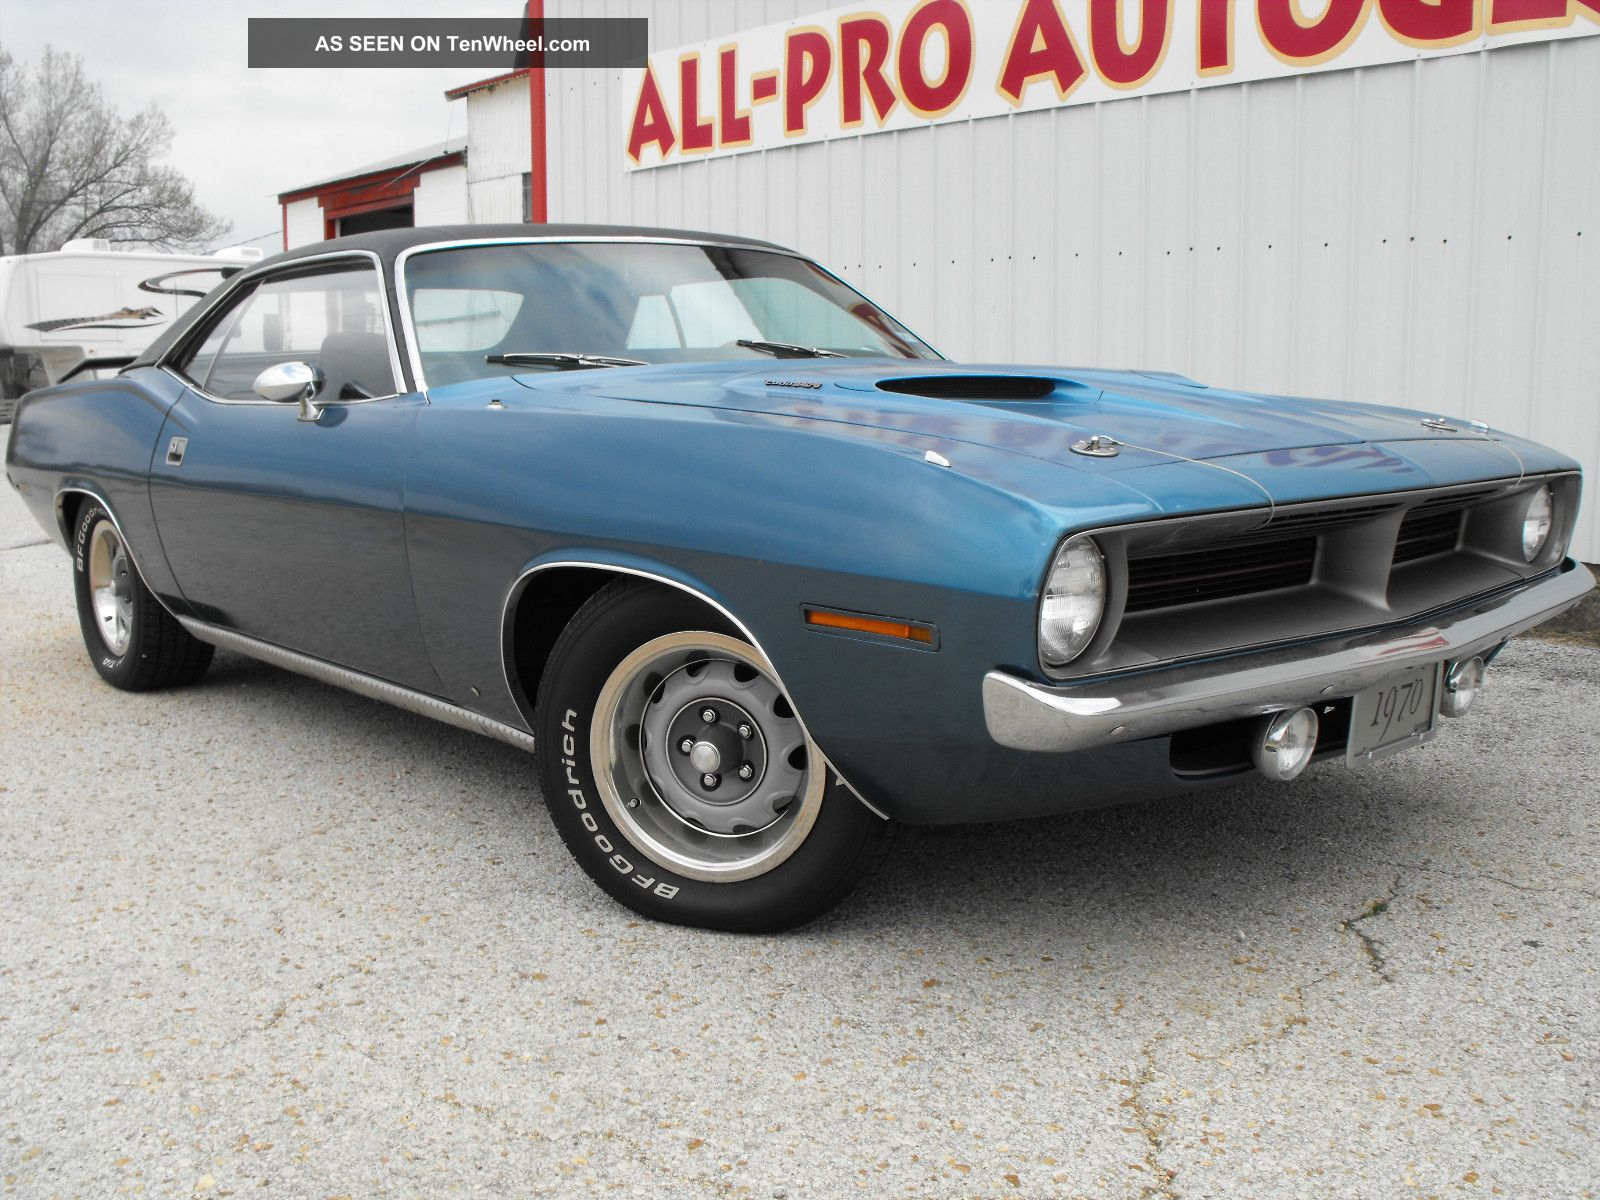 1970 Cuda 340 4 Speed Numbers Matching Barracuda photo